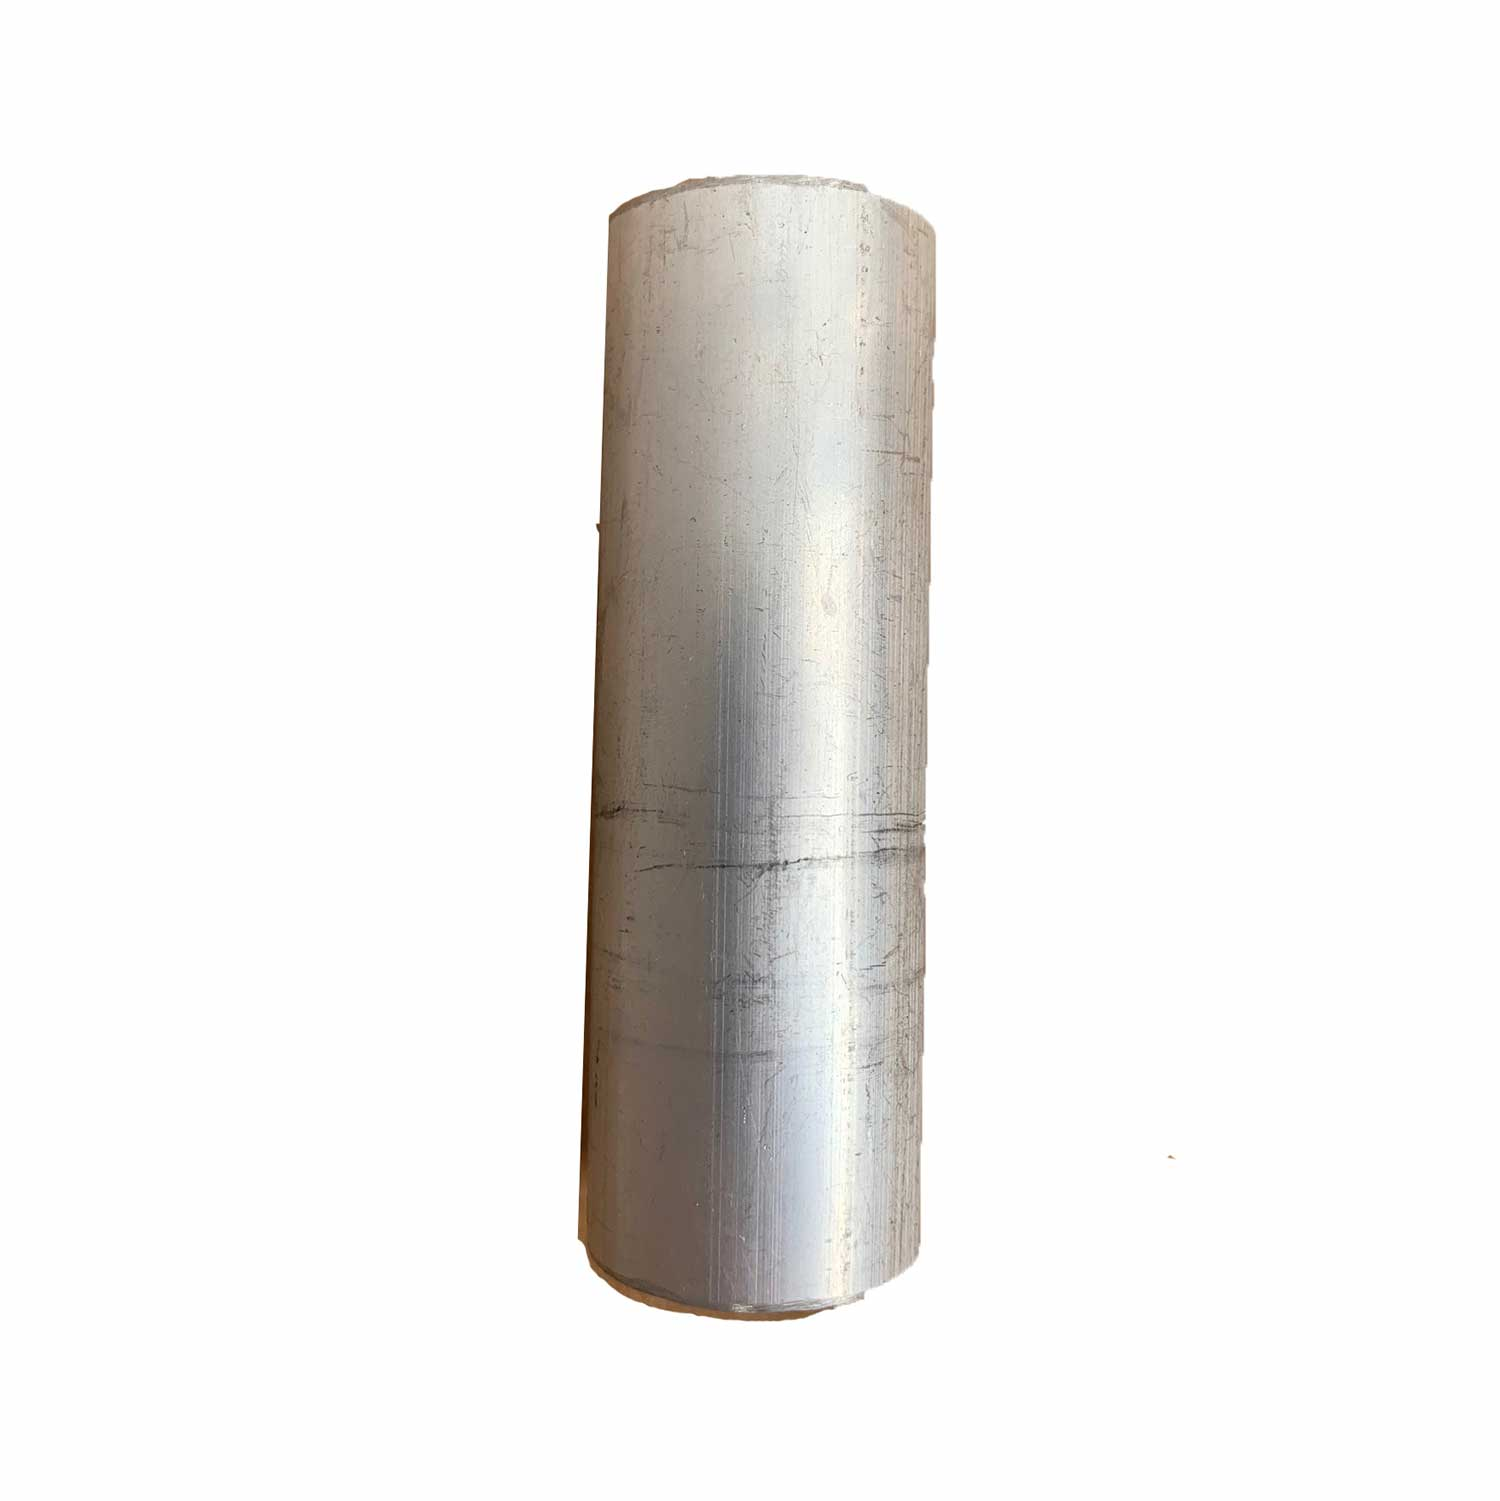 Spacer for Ejector Rod